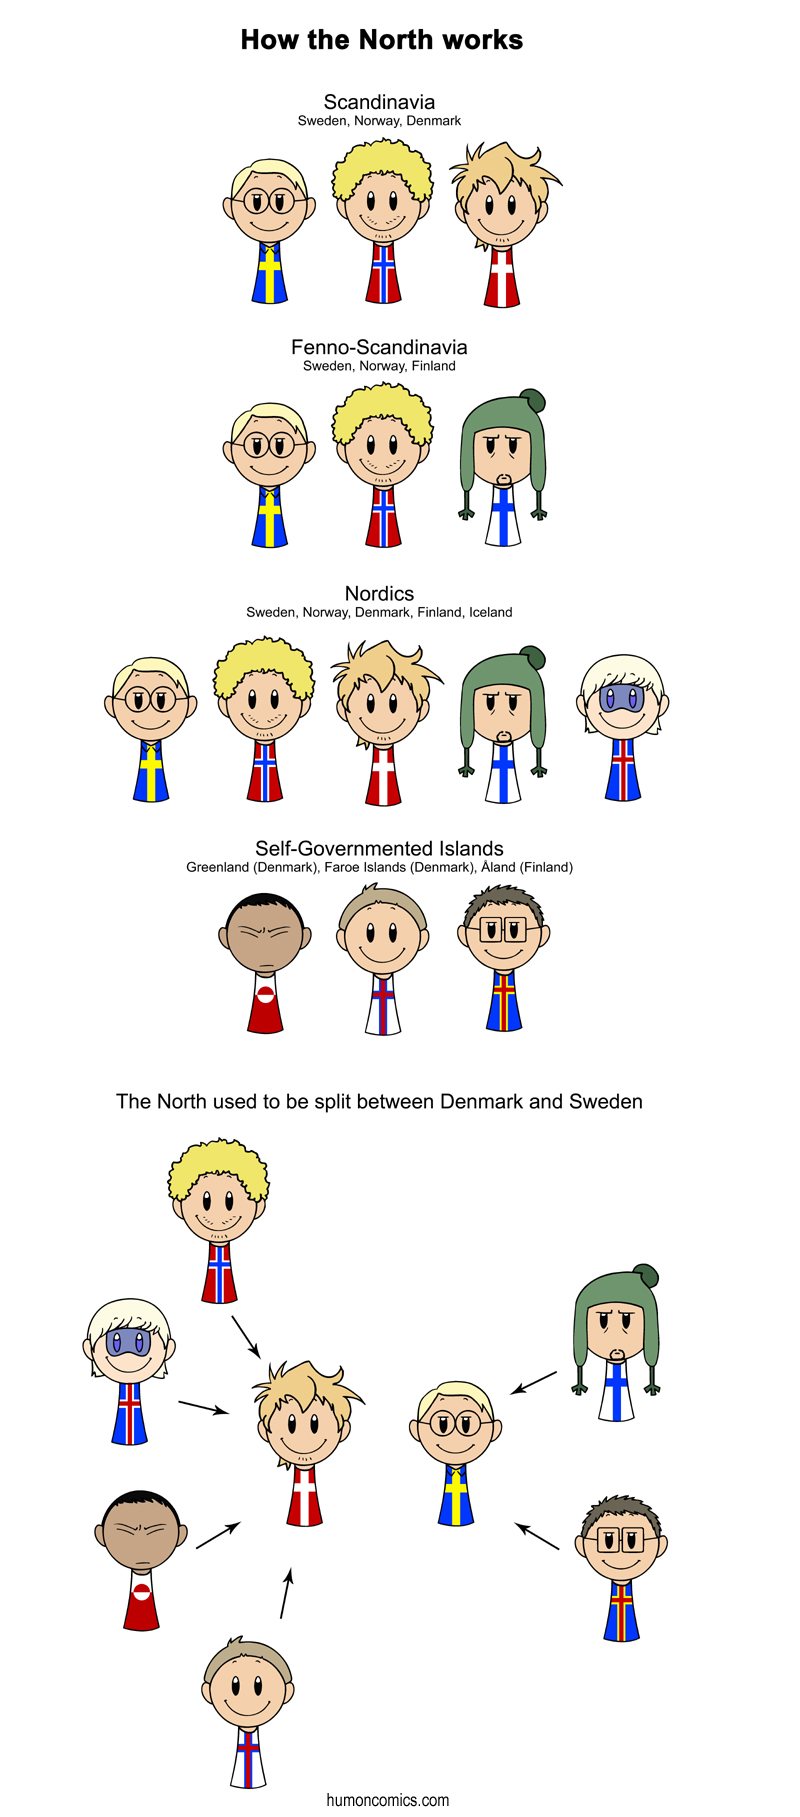 How the North works satwcomic.com